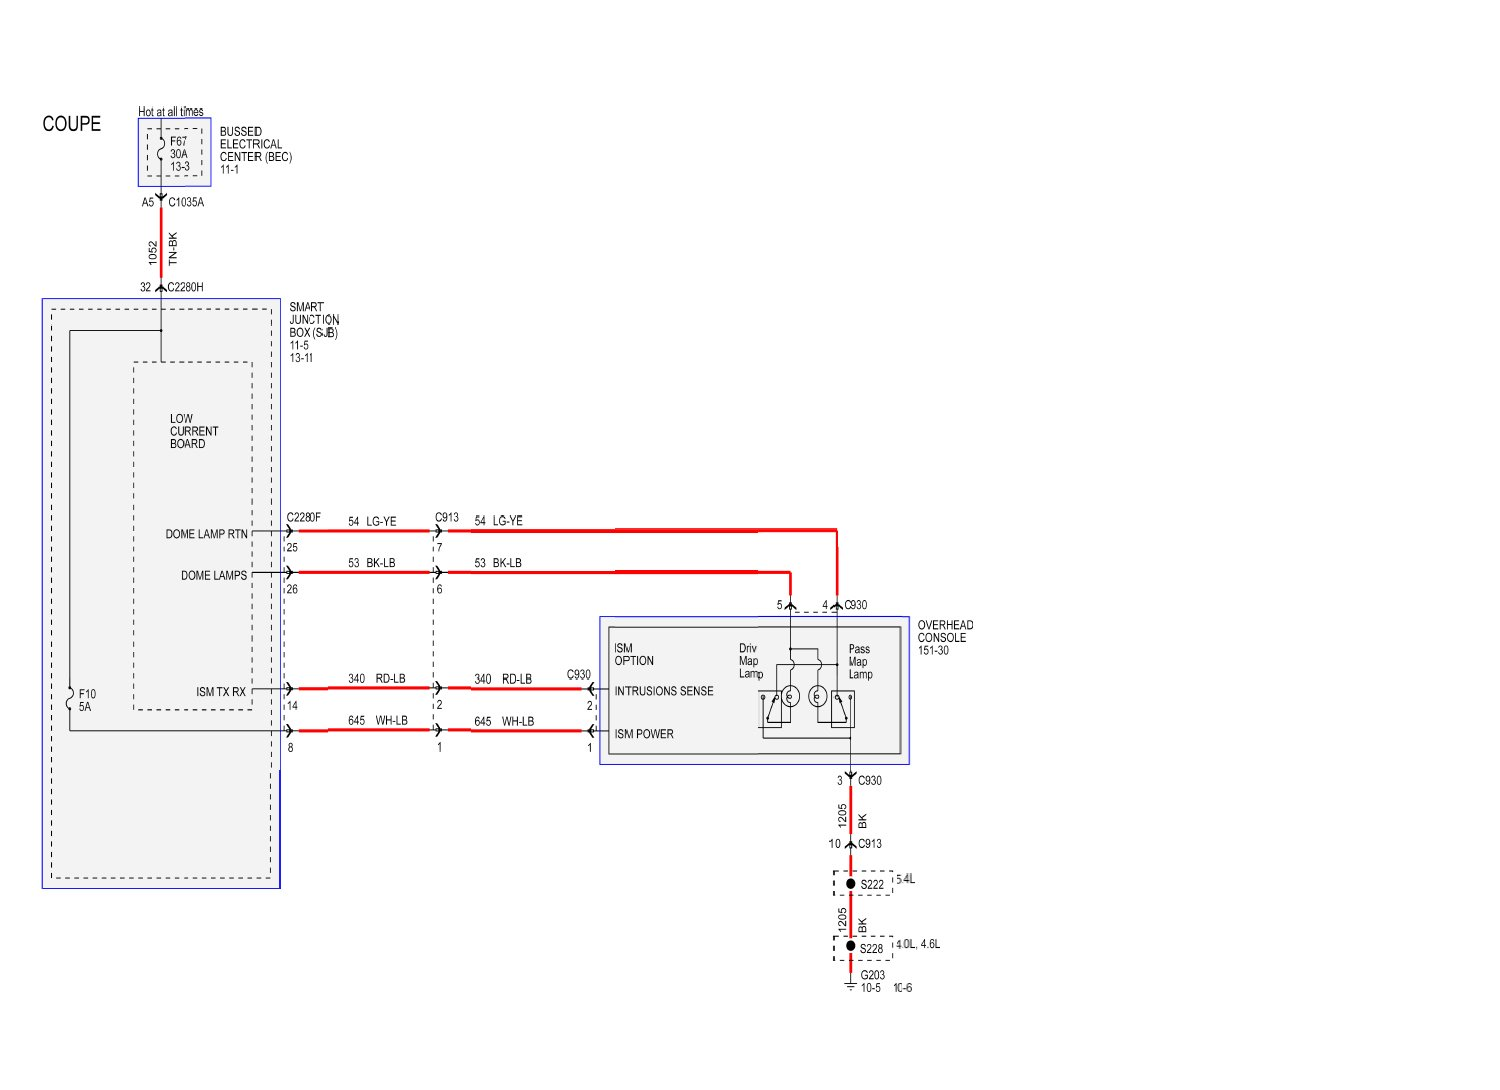 2012 Ford Mustang Courtesy Light Wiring Schematic Diagrams Dome Wireledschematic Wire Data Schema U2022 F100